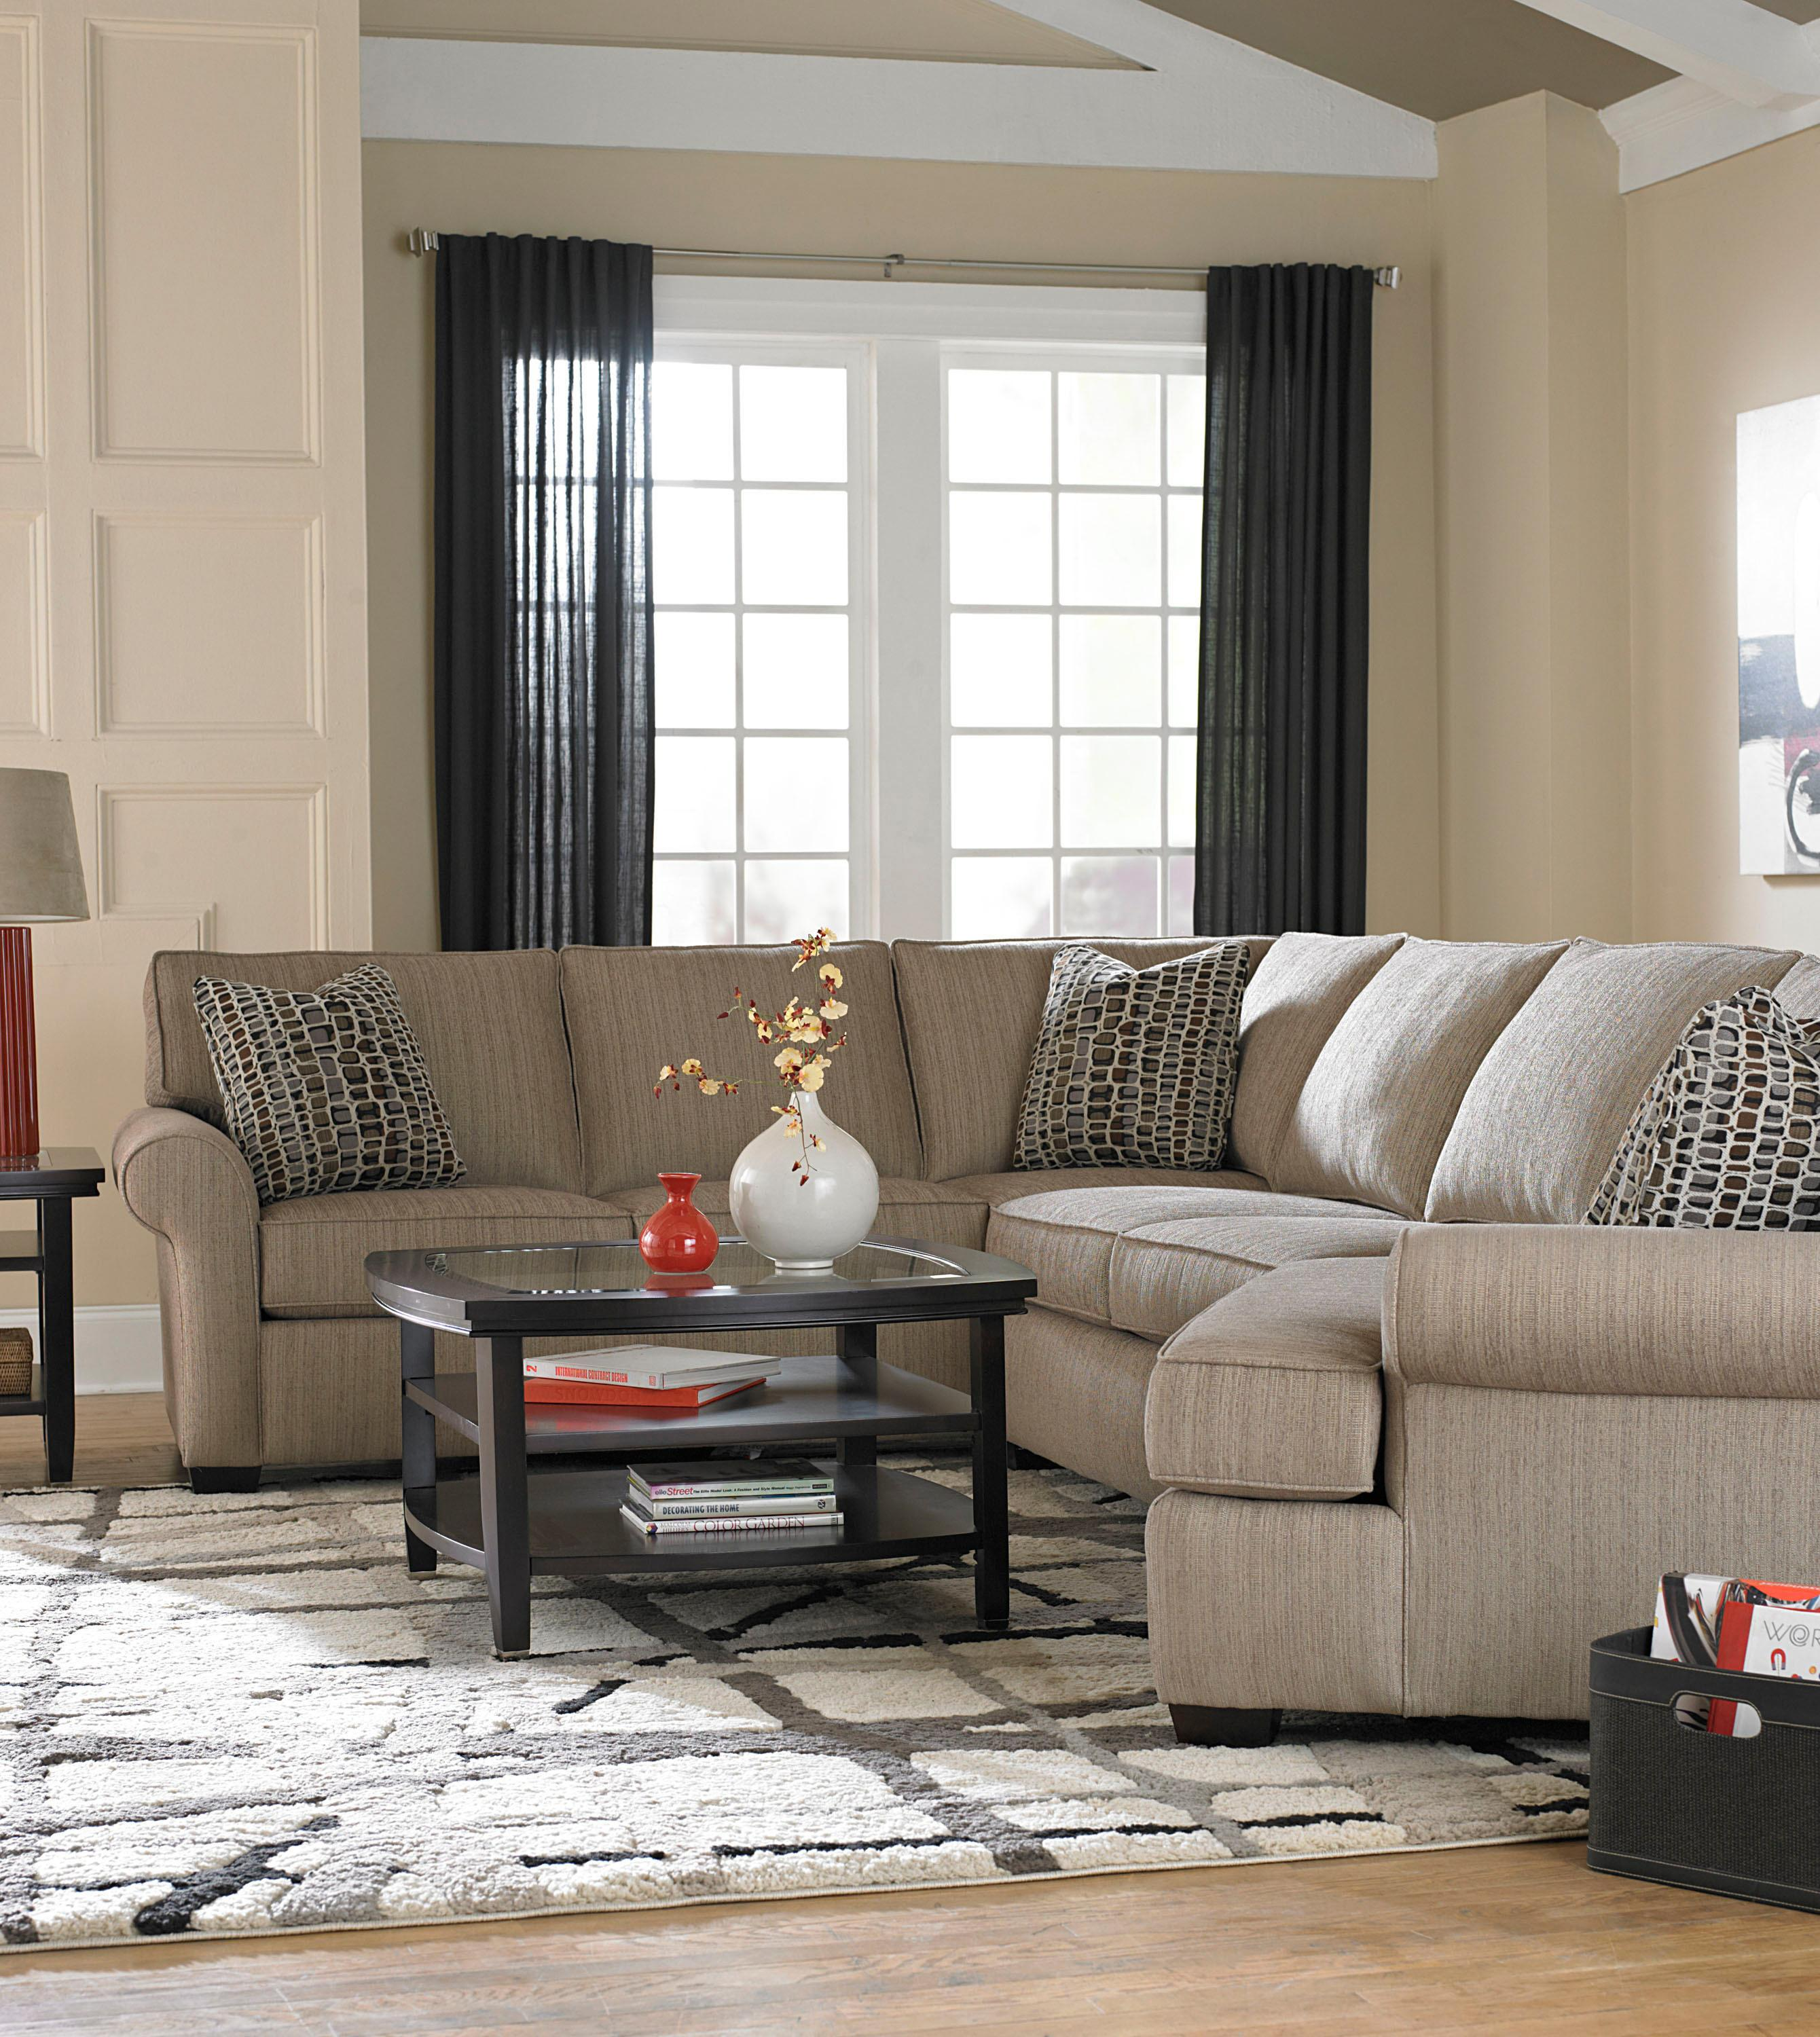 sectional collections piece right cuddler boston with england lsg ma small providence worcester item couch patina furniture new rotmans sofa and ri